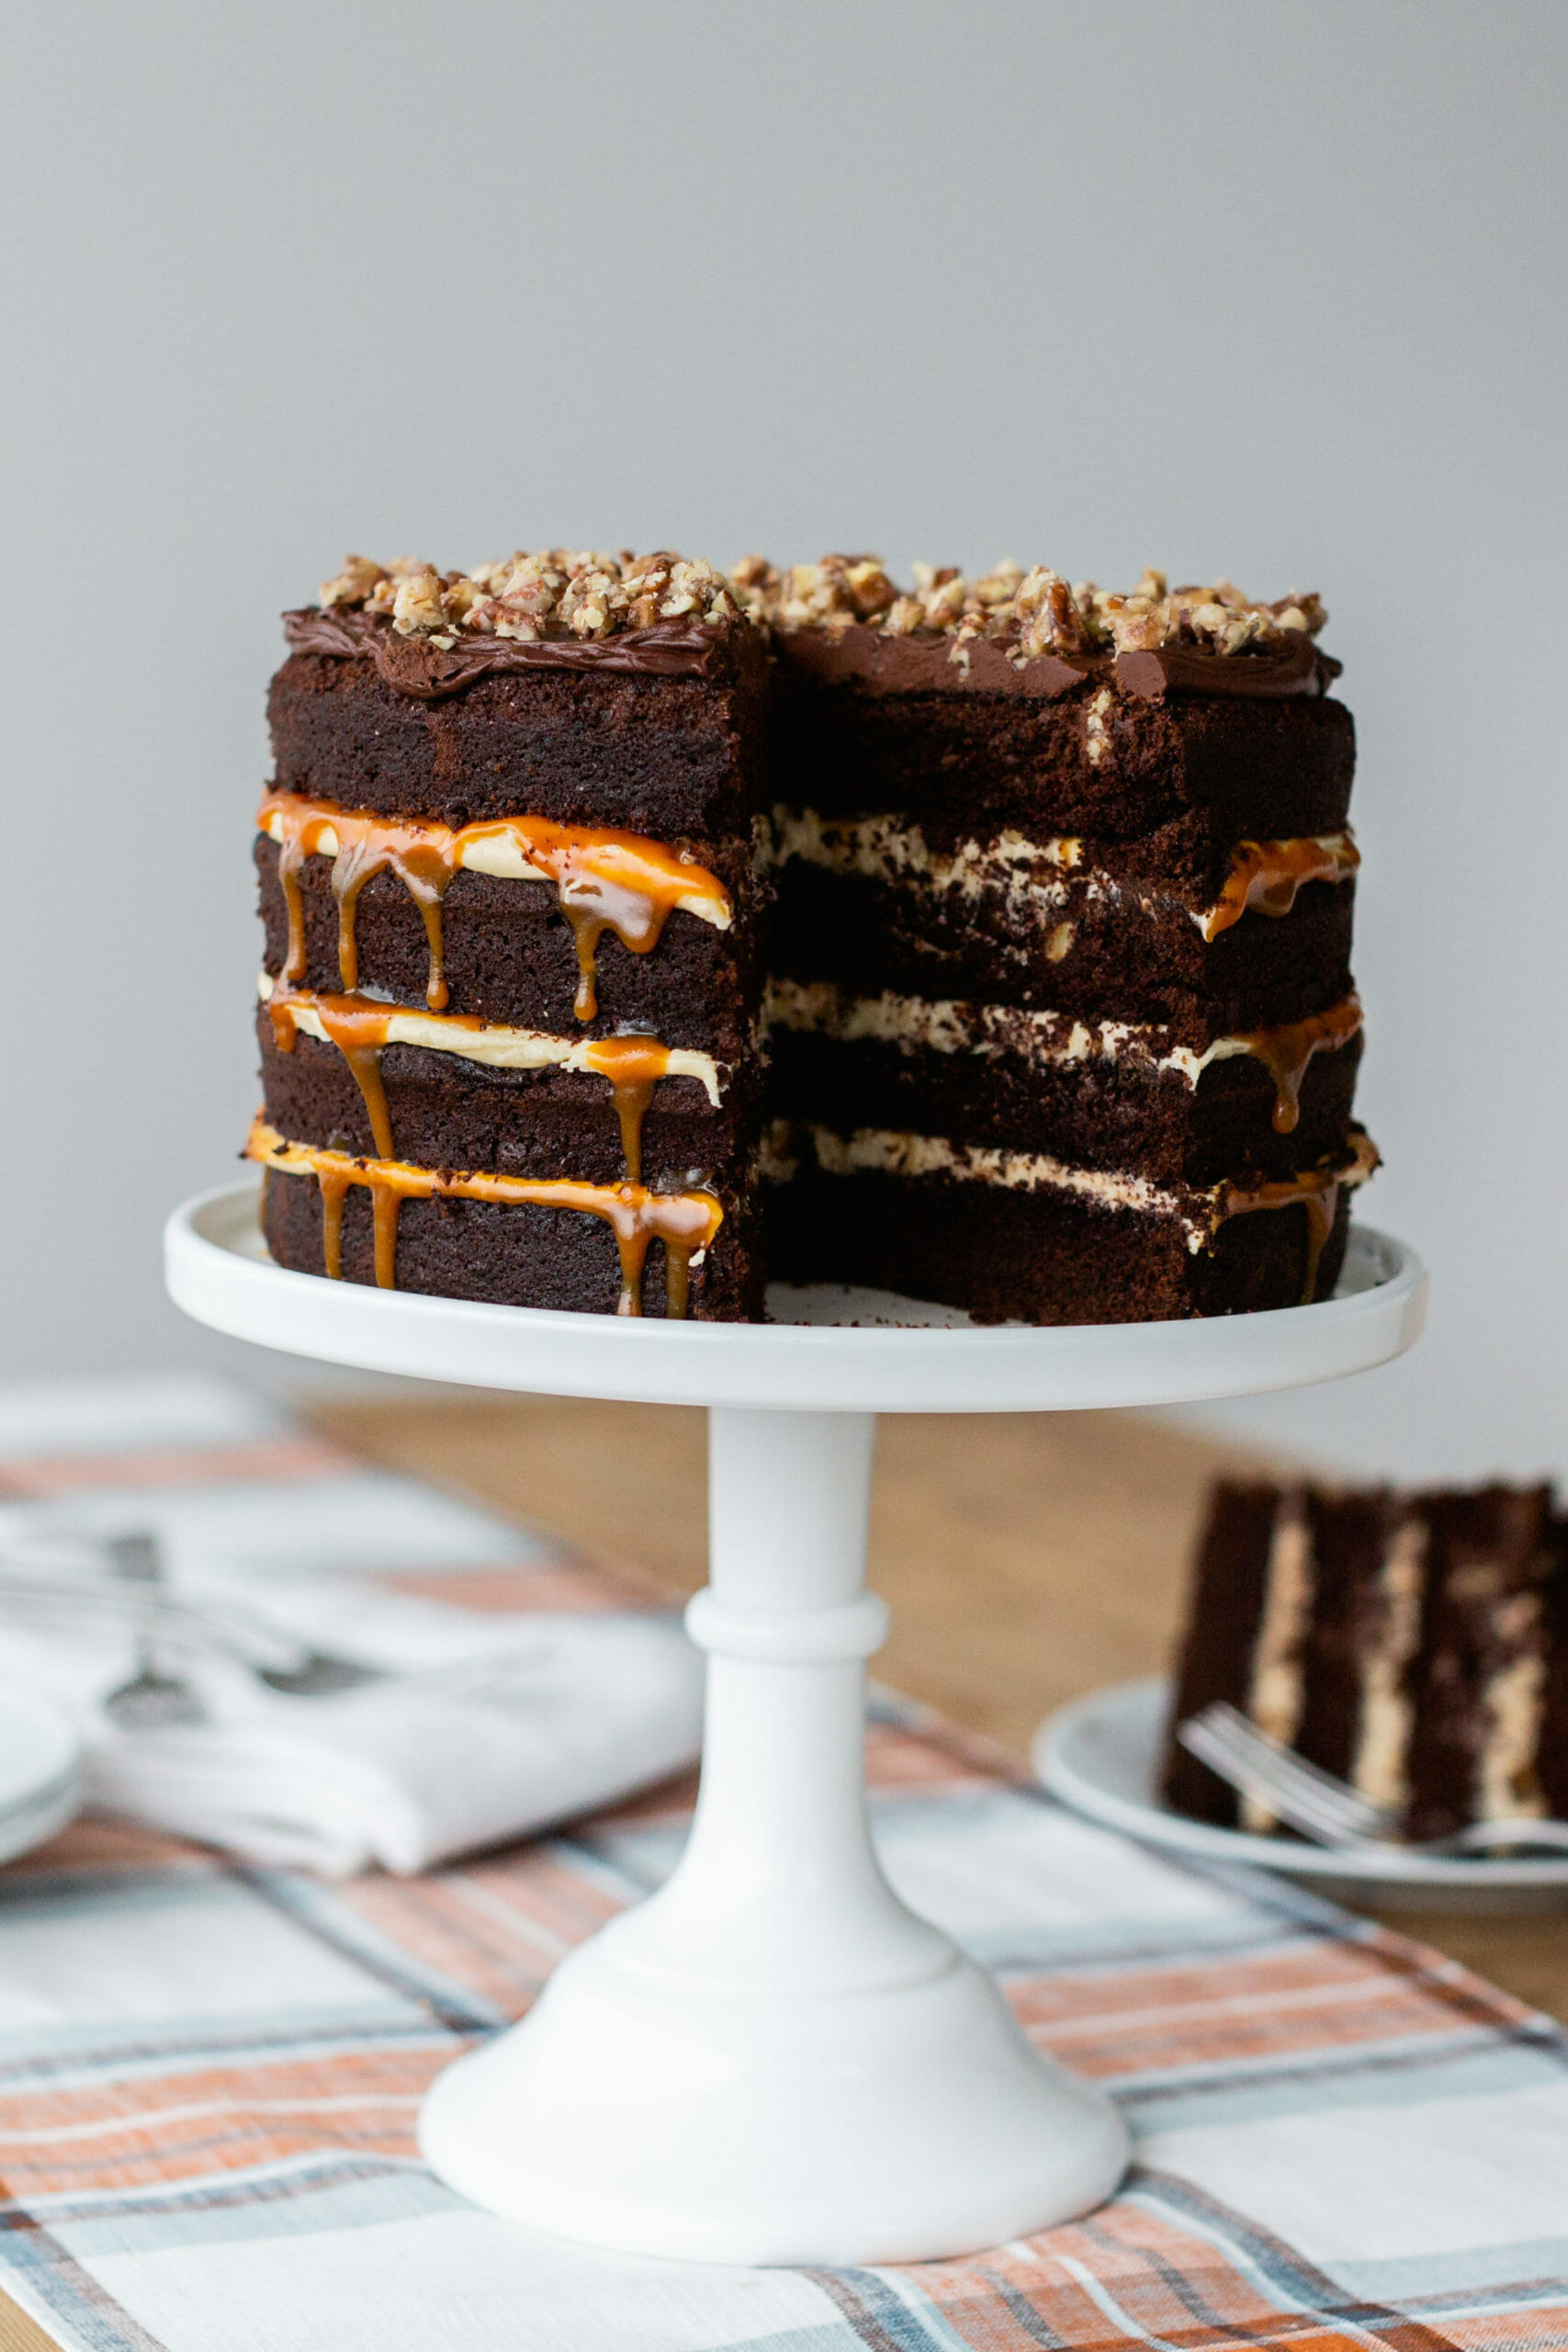 Cake Perfection: Chocolate Pecan Guinness Caramel Cake